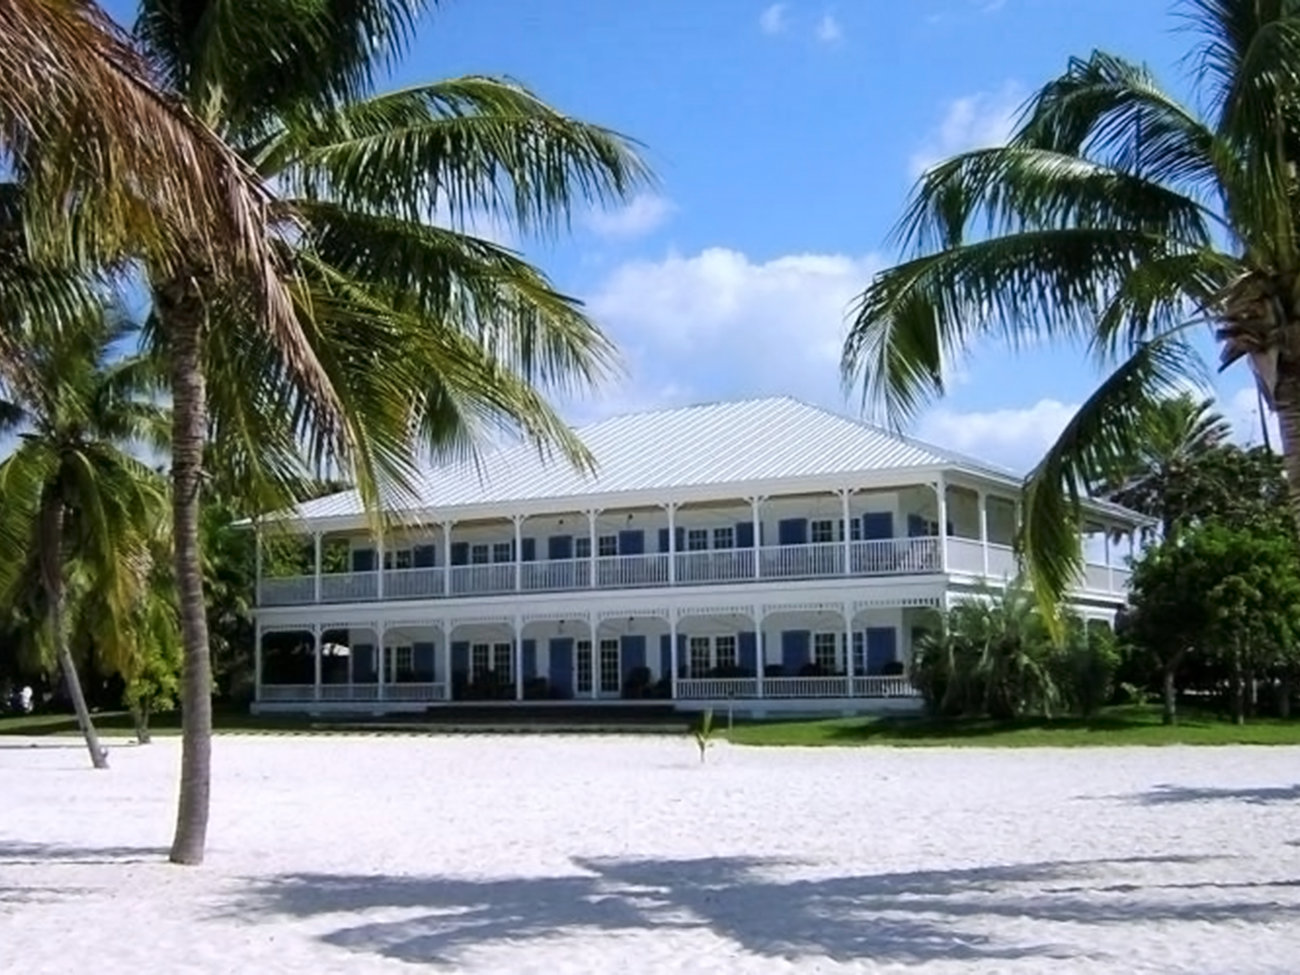 Pierre's Hotel in Florida Keys